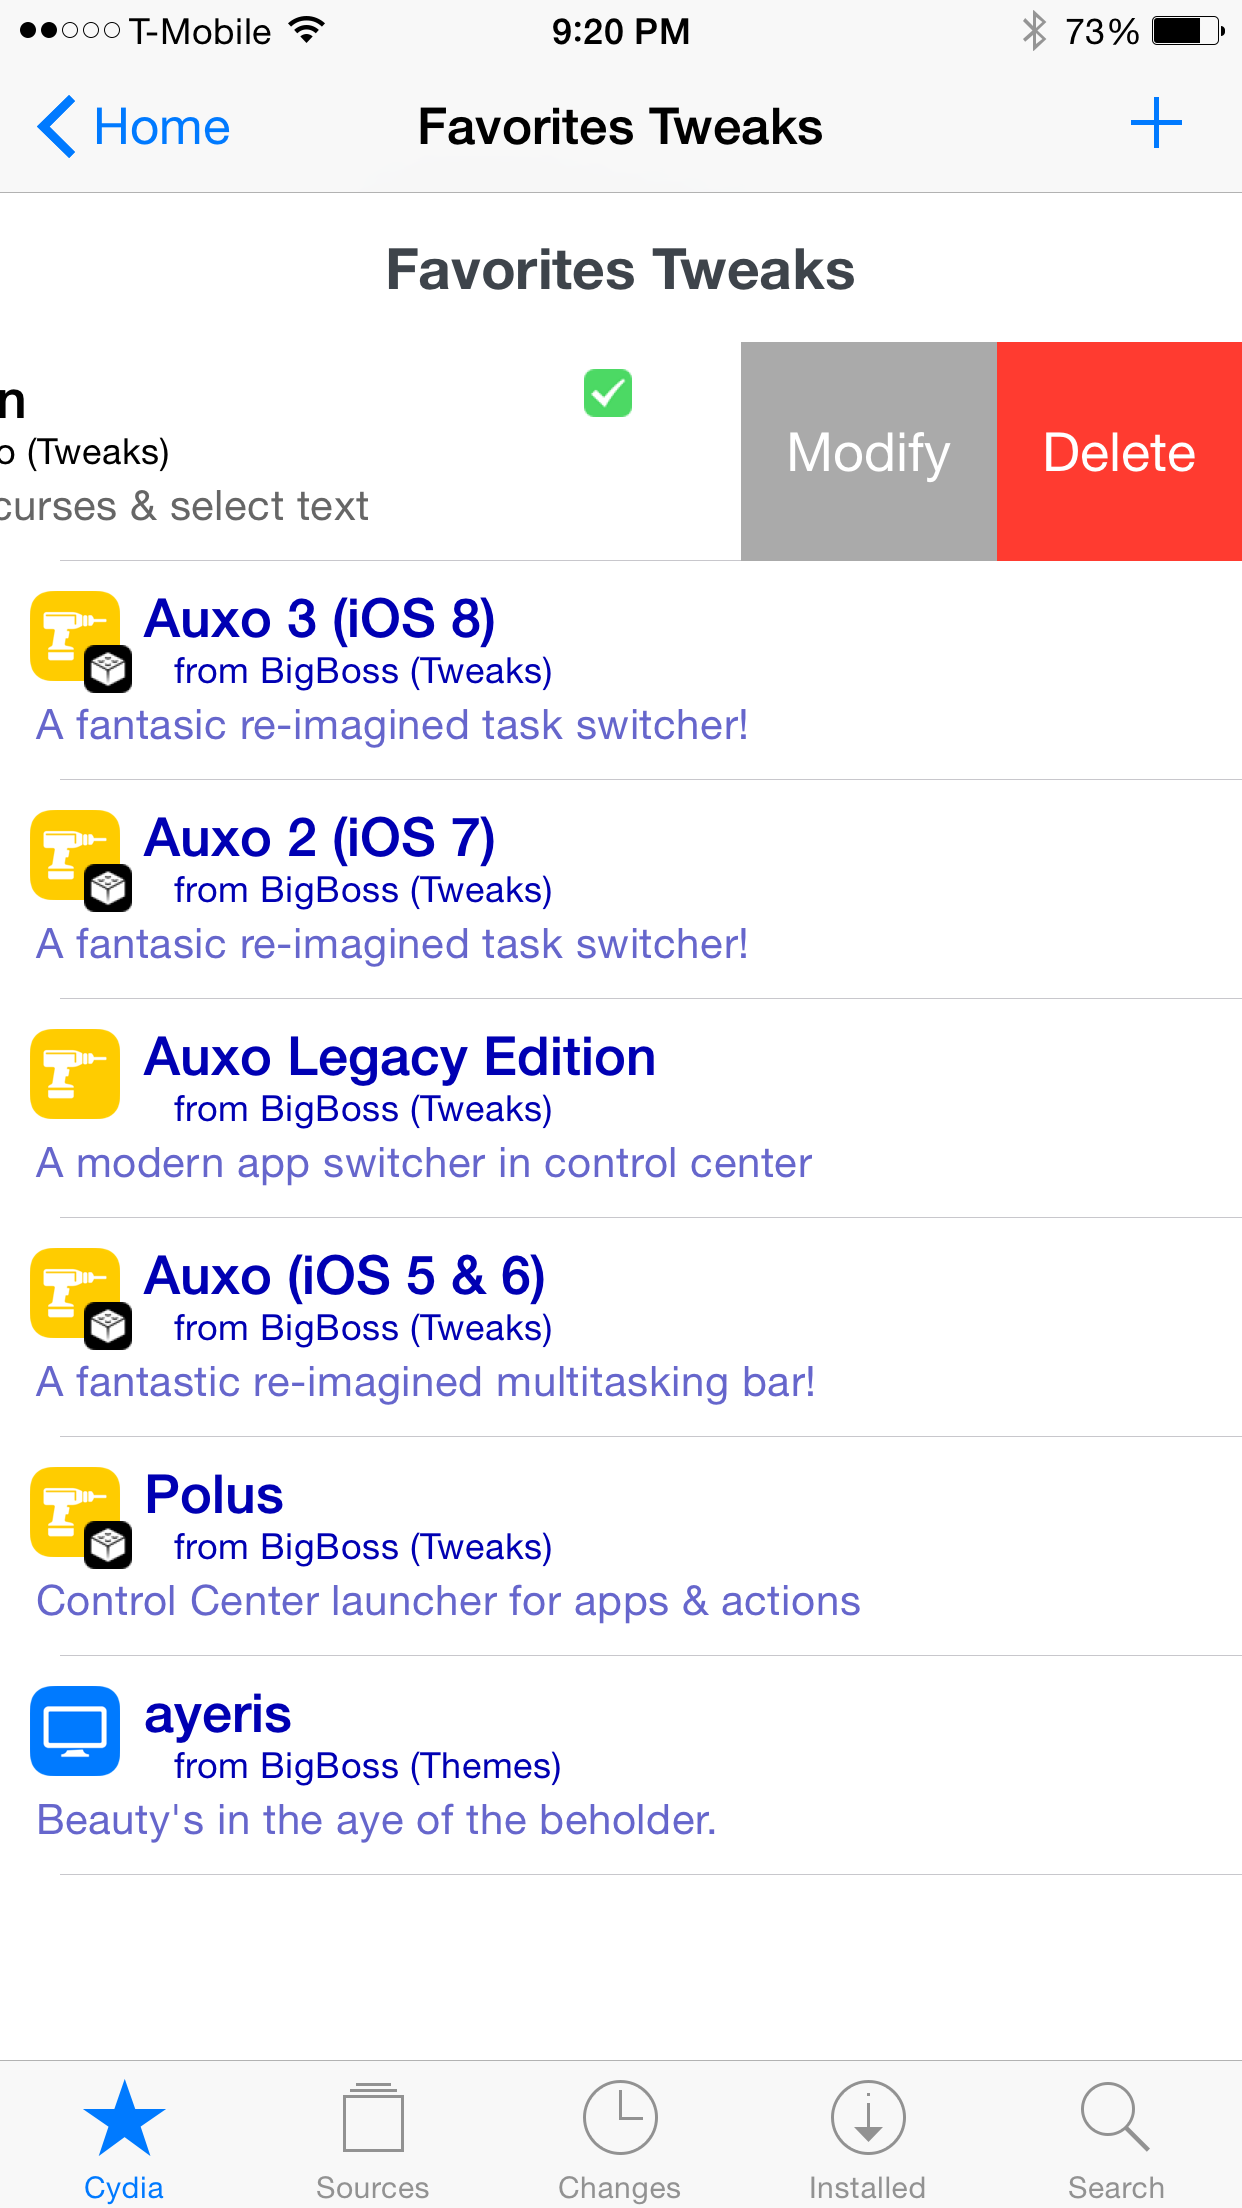 FavoriteTweaks Cydia